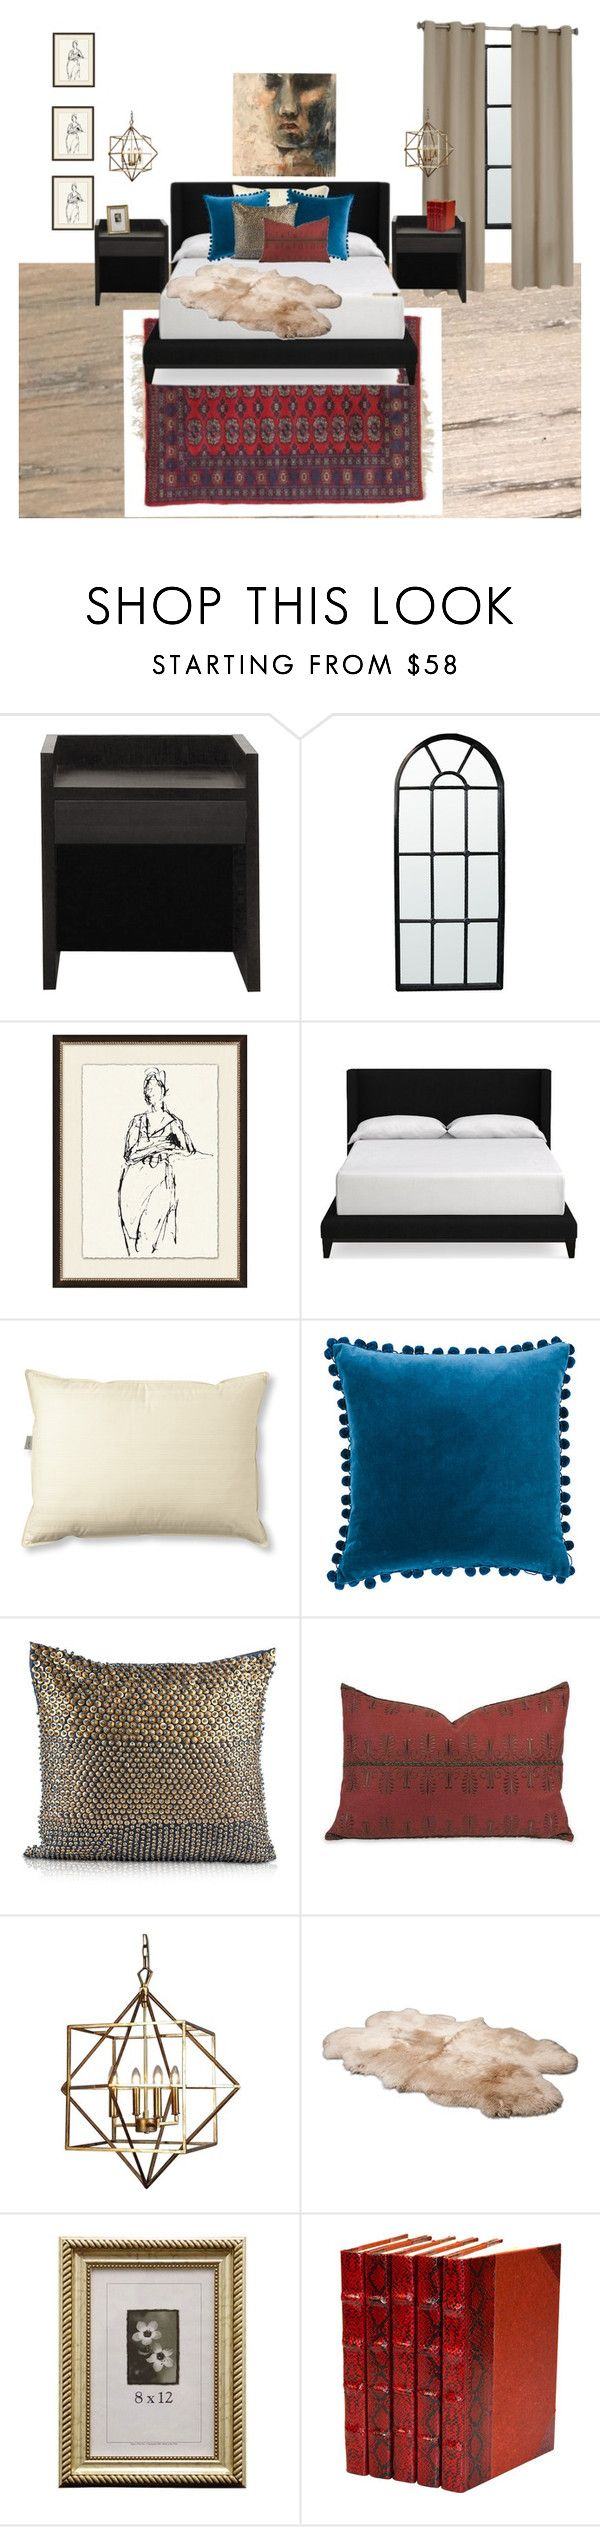 """""""Final Draft Guest"""" by erin-bodie on Polyvore featuring interior, interiors, interior design, home, home decor, interior decorating, XVL, Noir, Pottery Barn and Williams-Sonoma"""